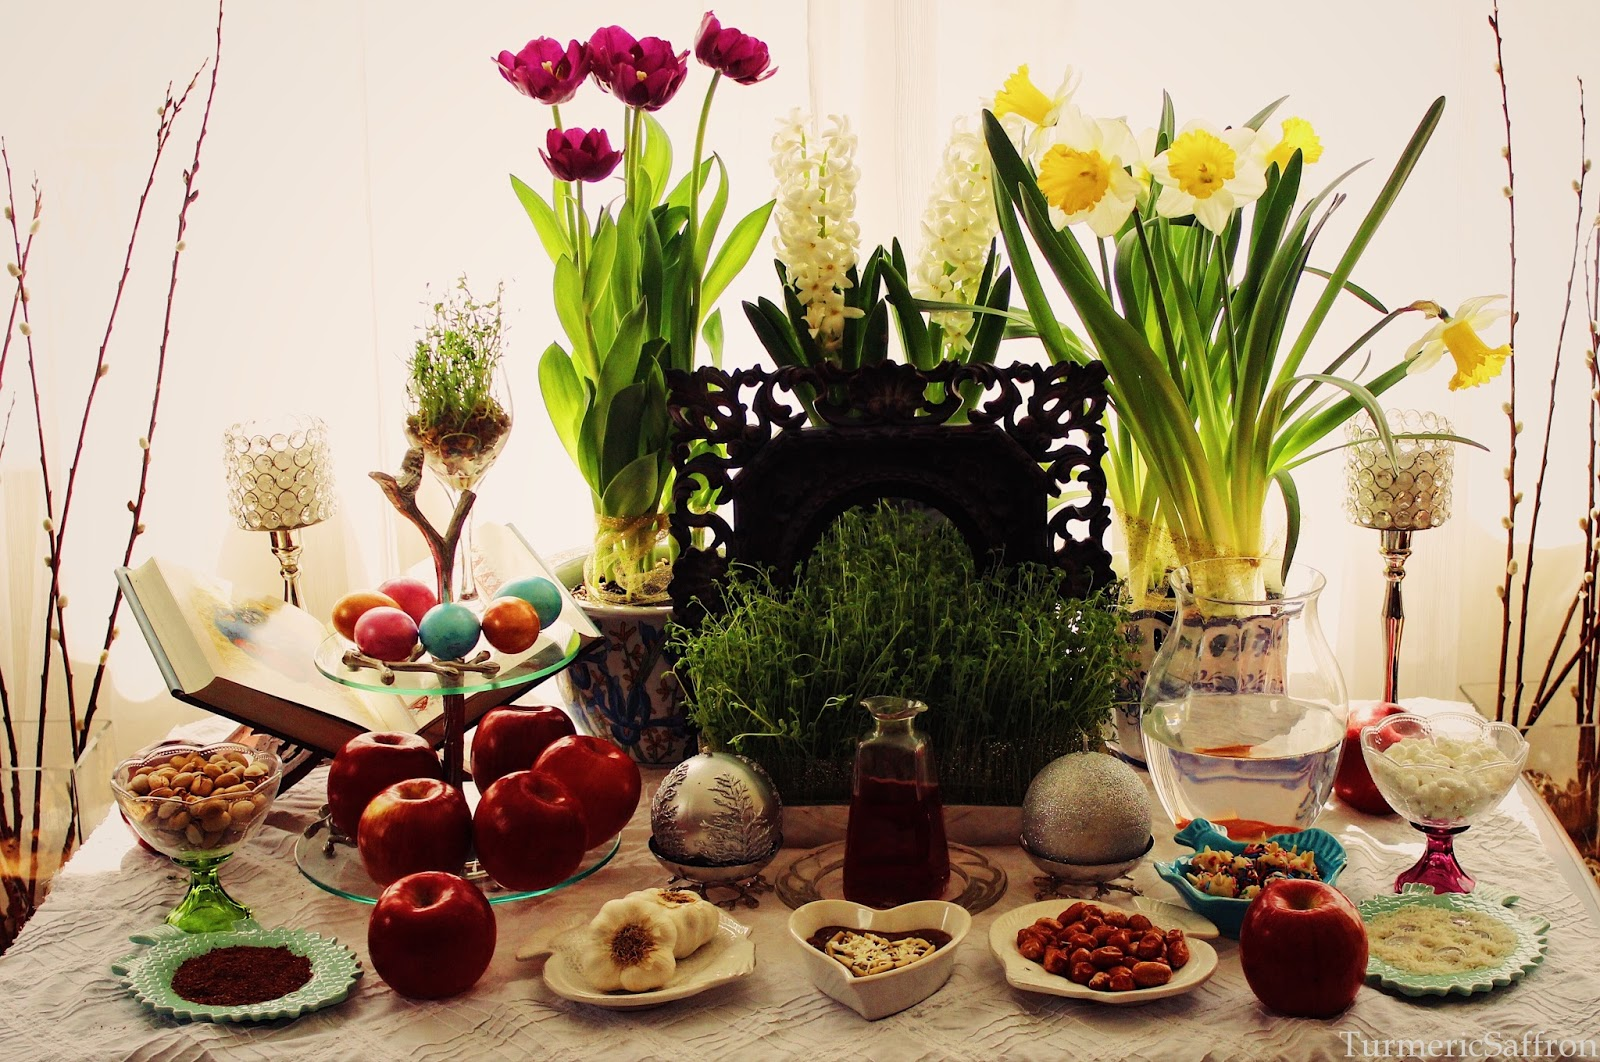 7 Things About Persian New Year You Didn't Know